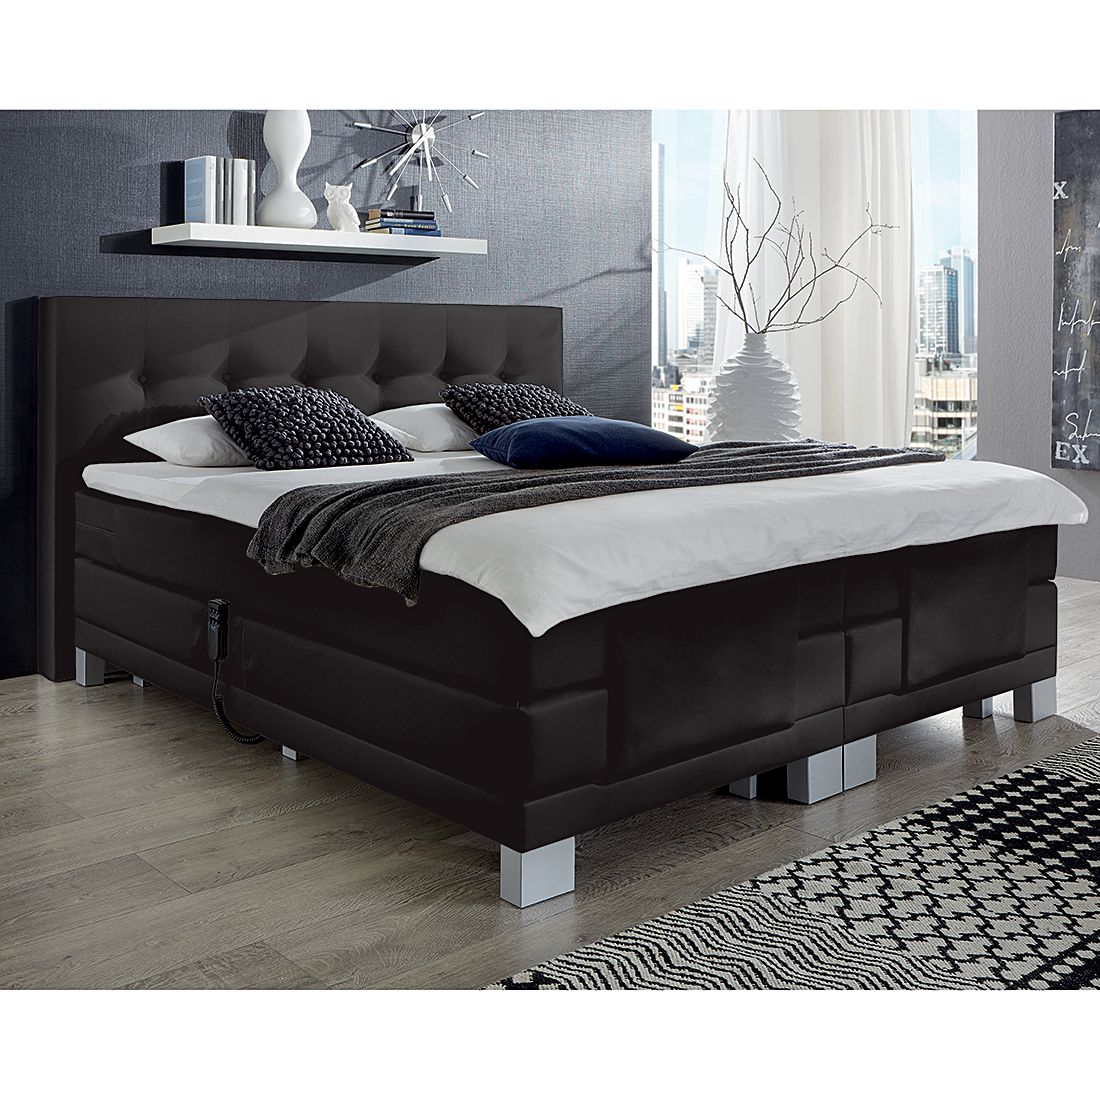 54 sparen boxspringbett diamond night nur cherry m bel home24. Black Bedroom Furniture Sets. Home Design Ideas